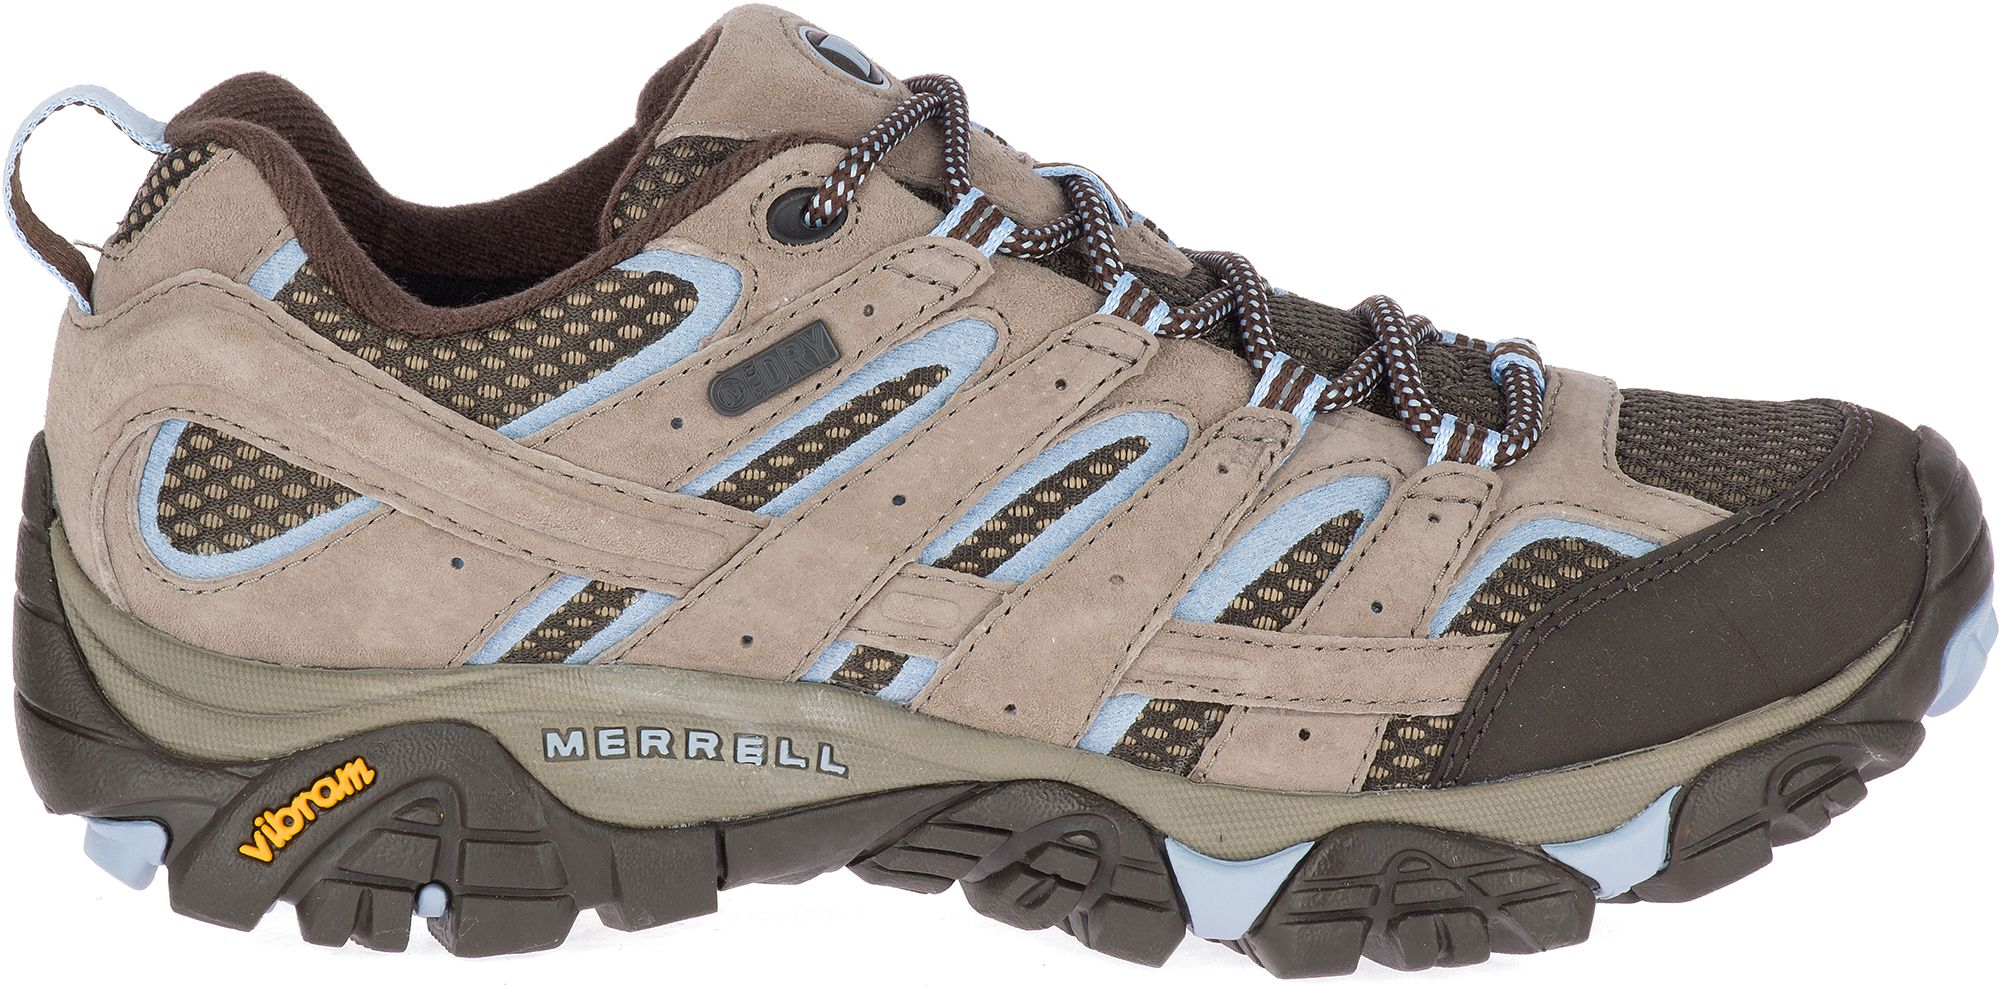 merrell walking shoes size 6 00